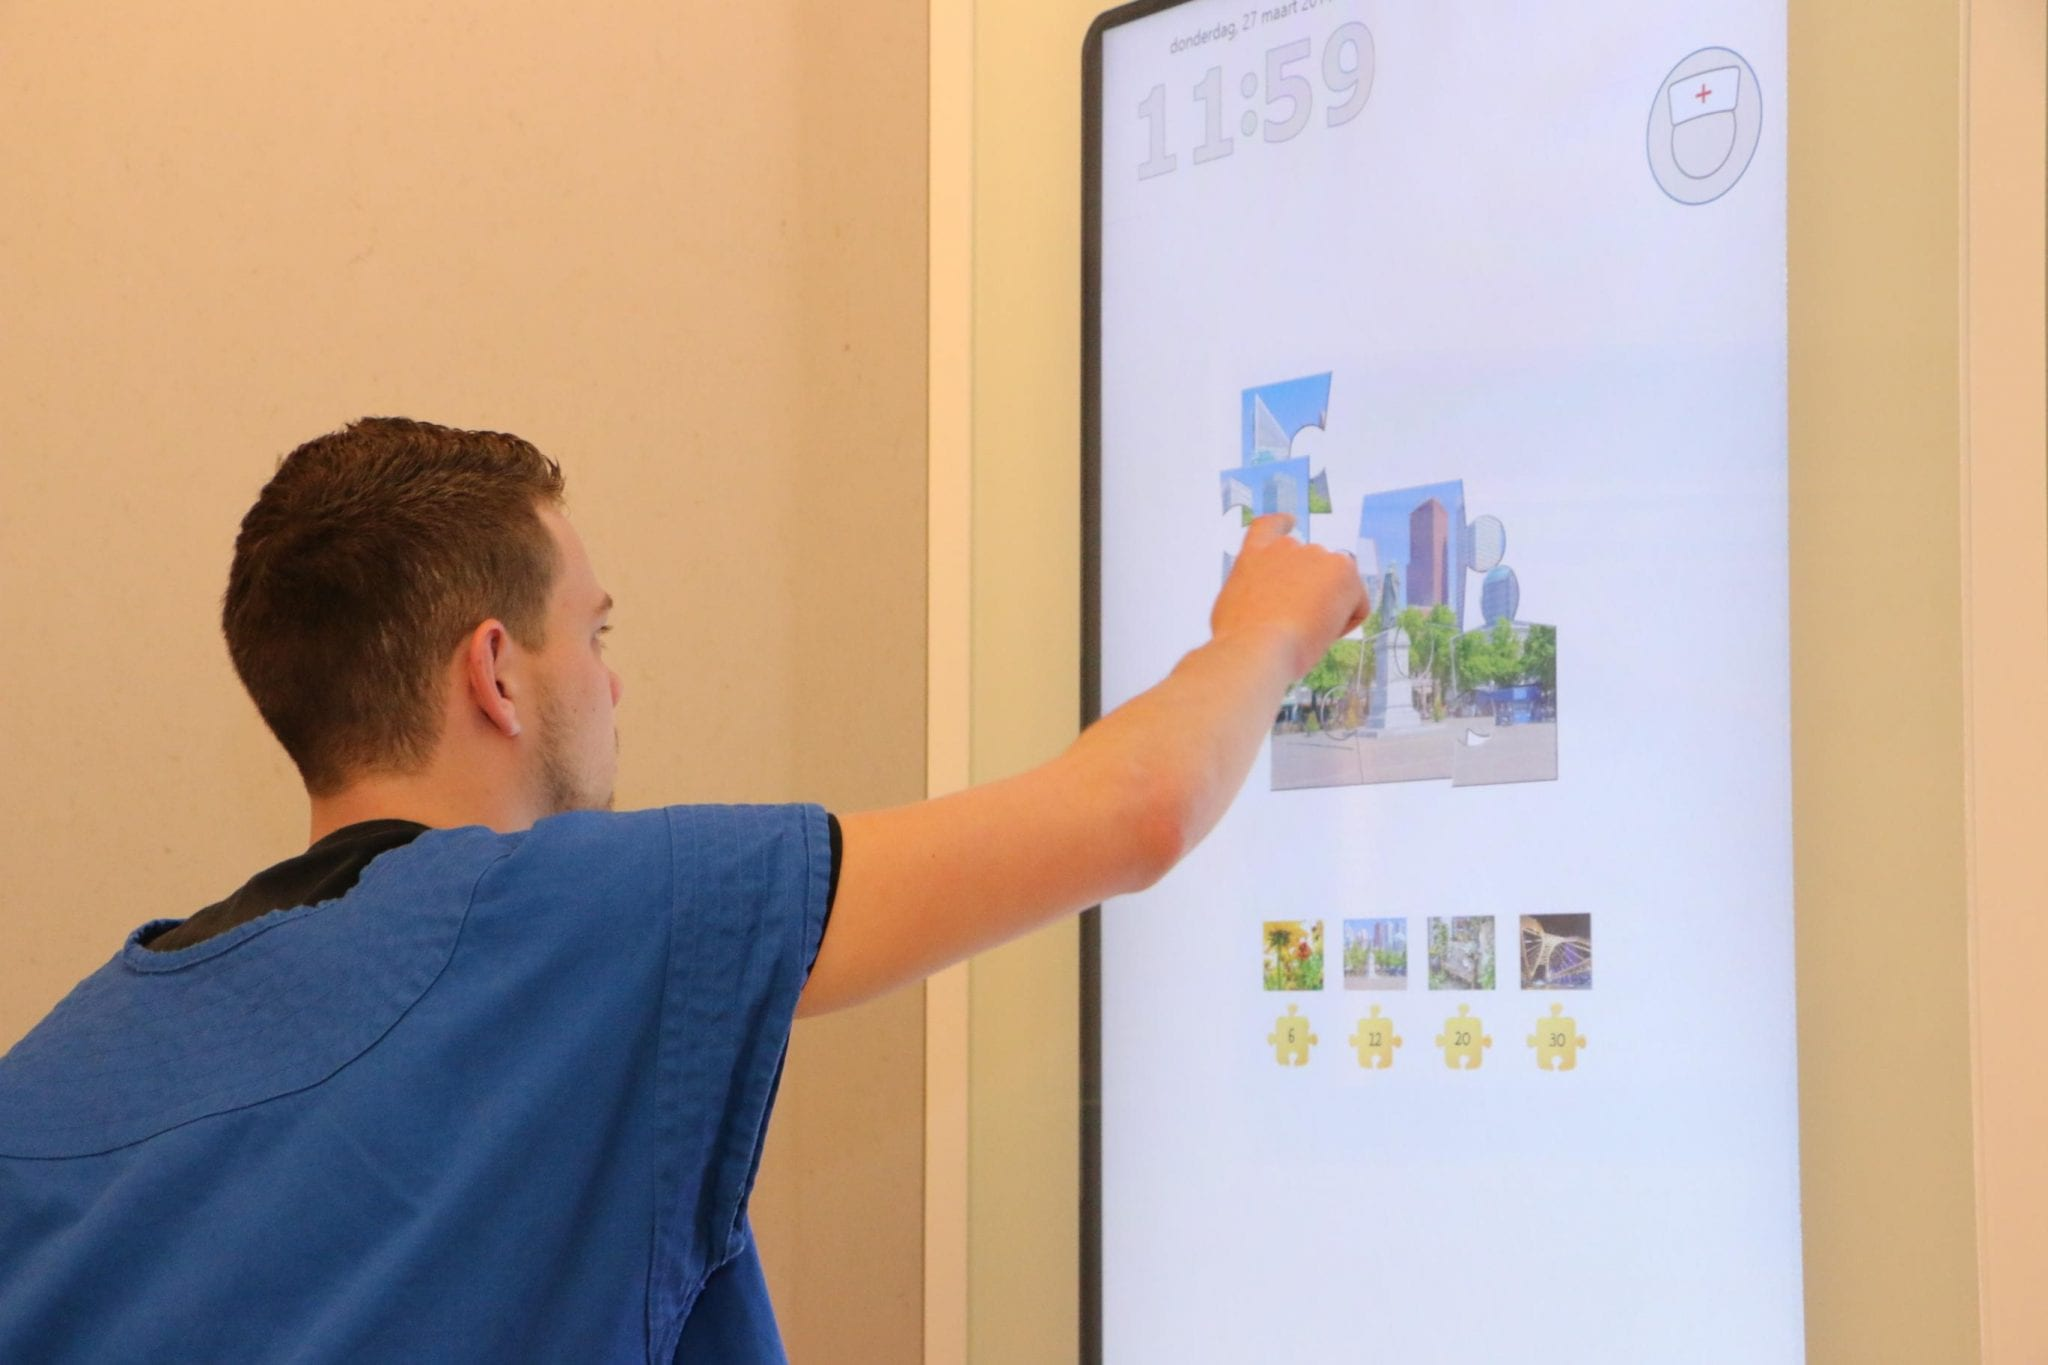 A Zytronic and Recornect interactive touchscreen for psychiatric patients